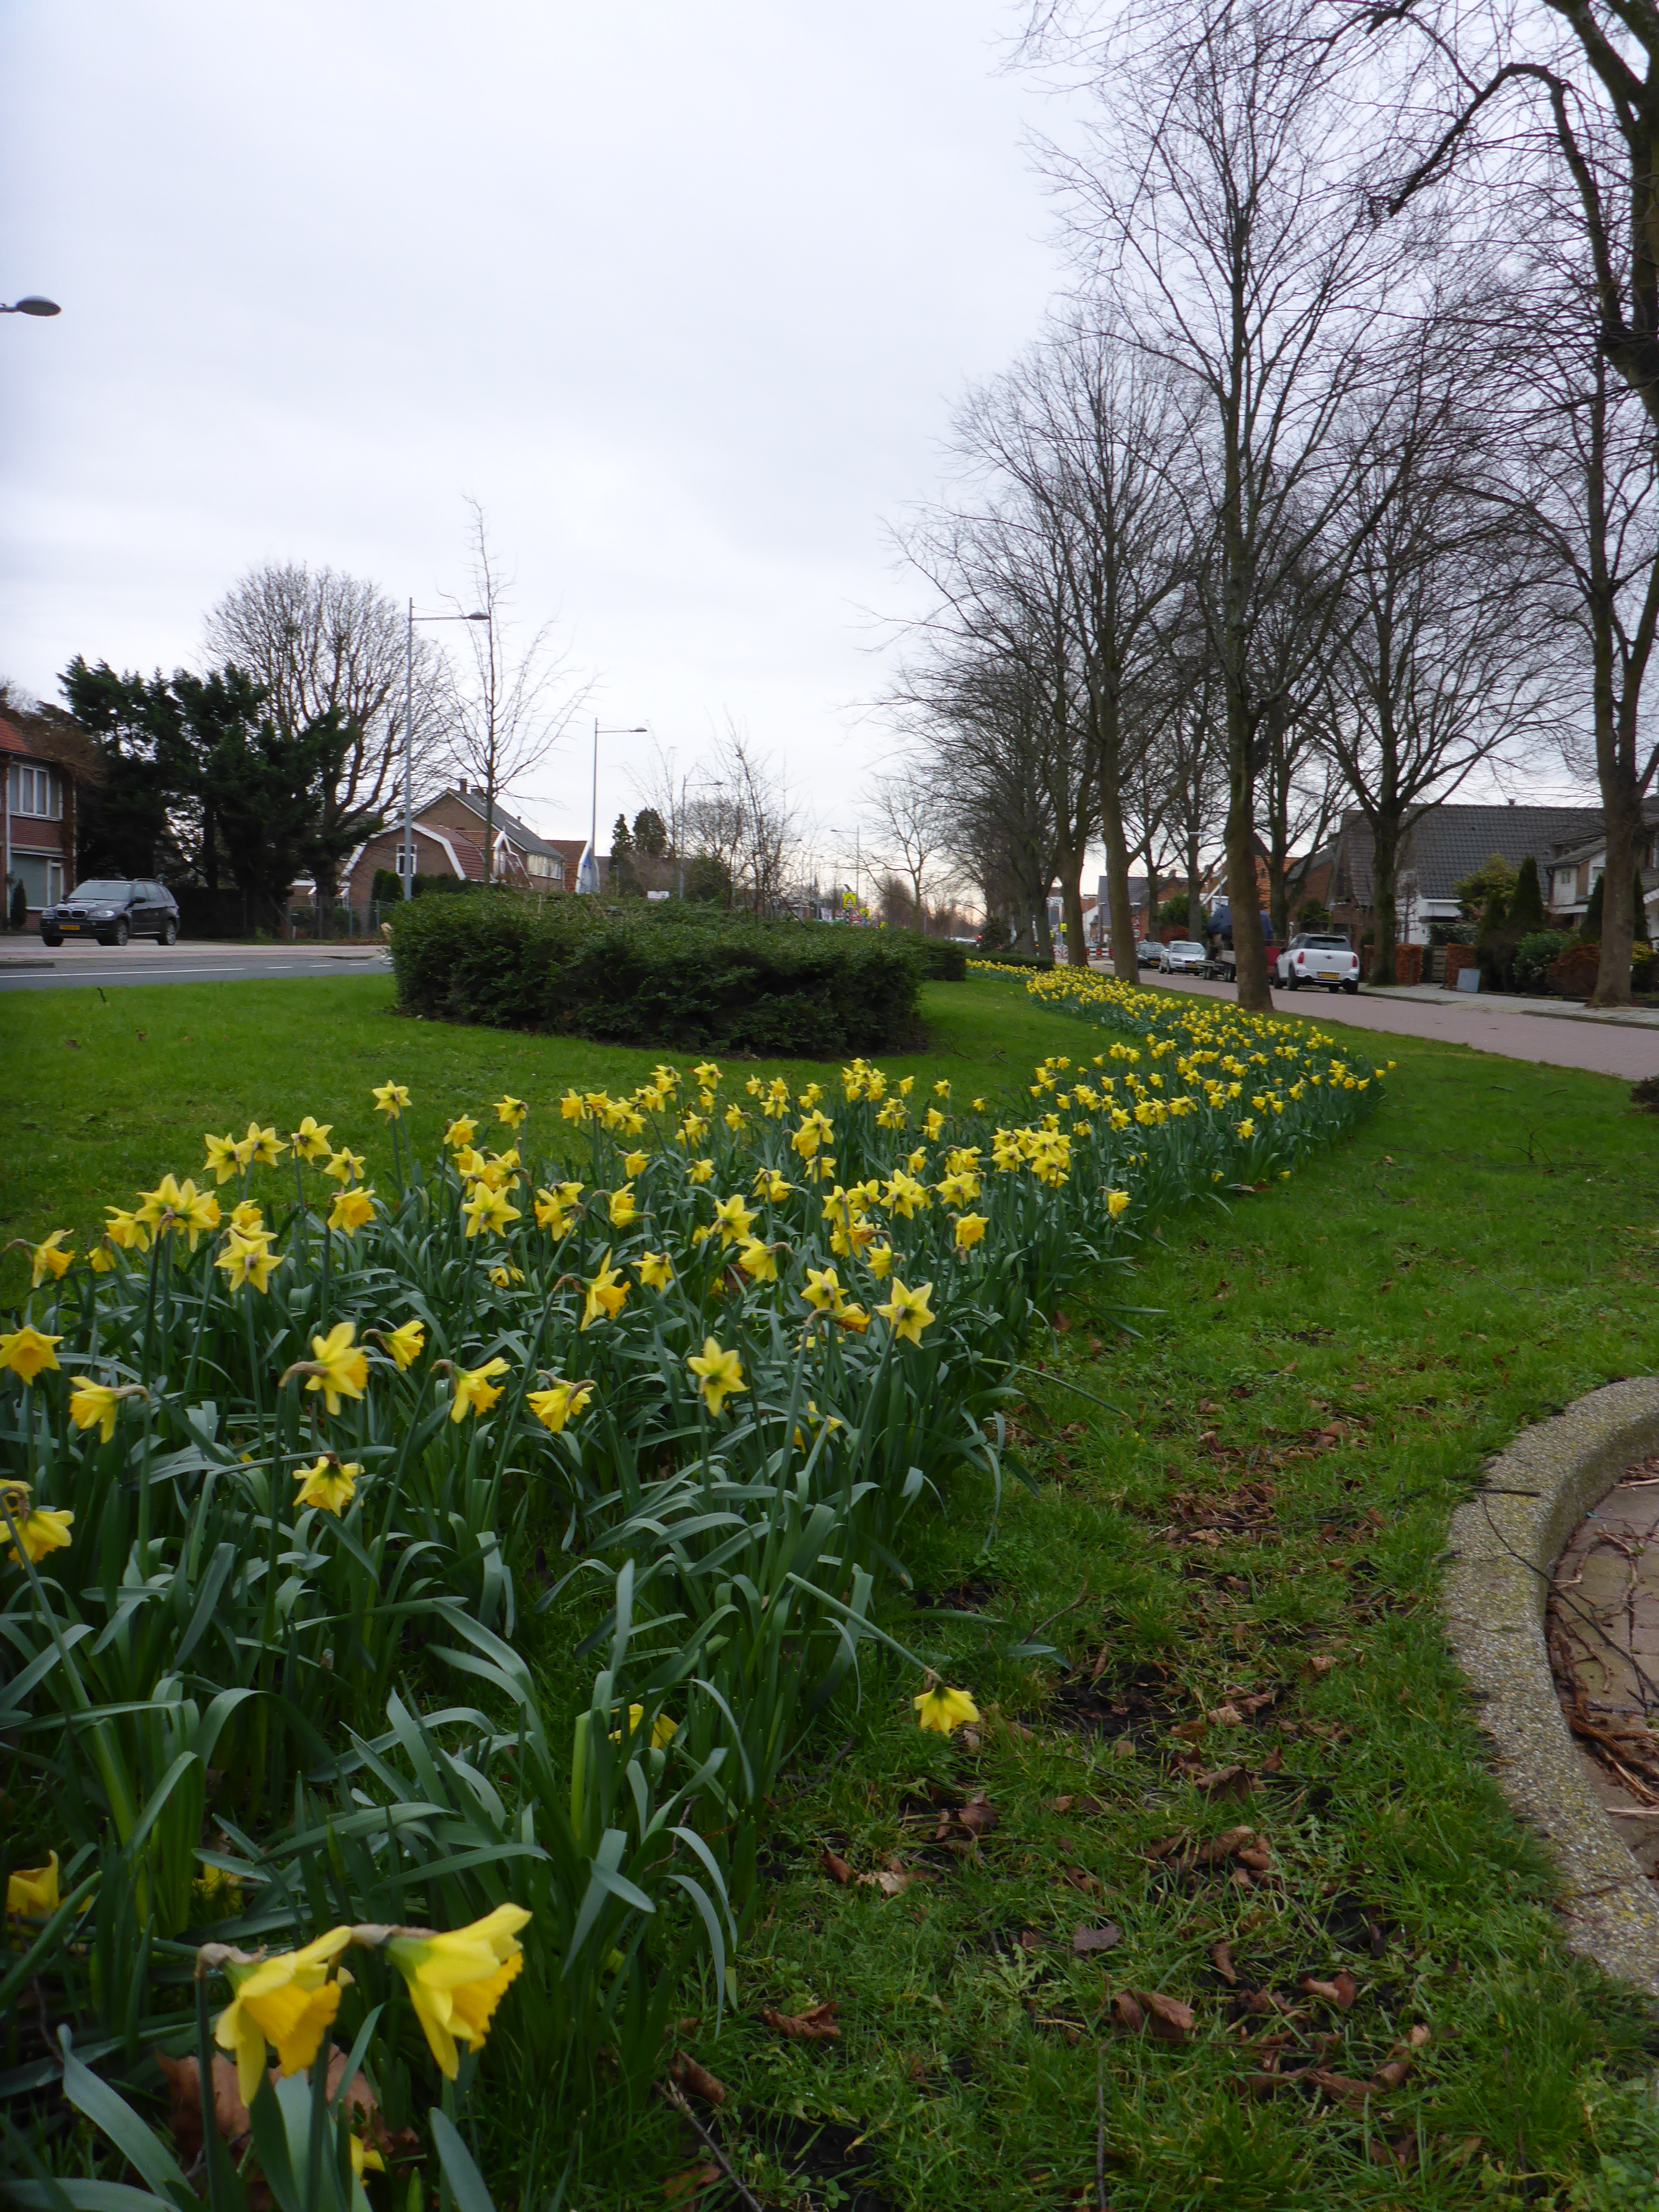 Daffodils in the center of our town waiting for the afternoon snow.